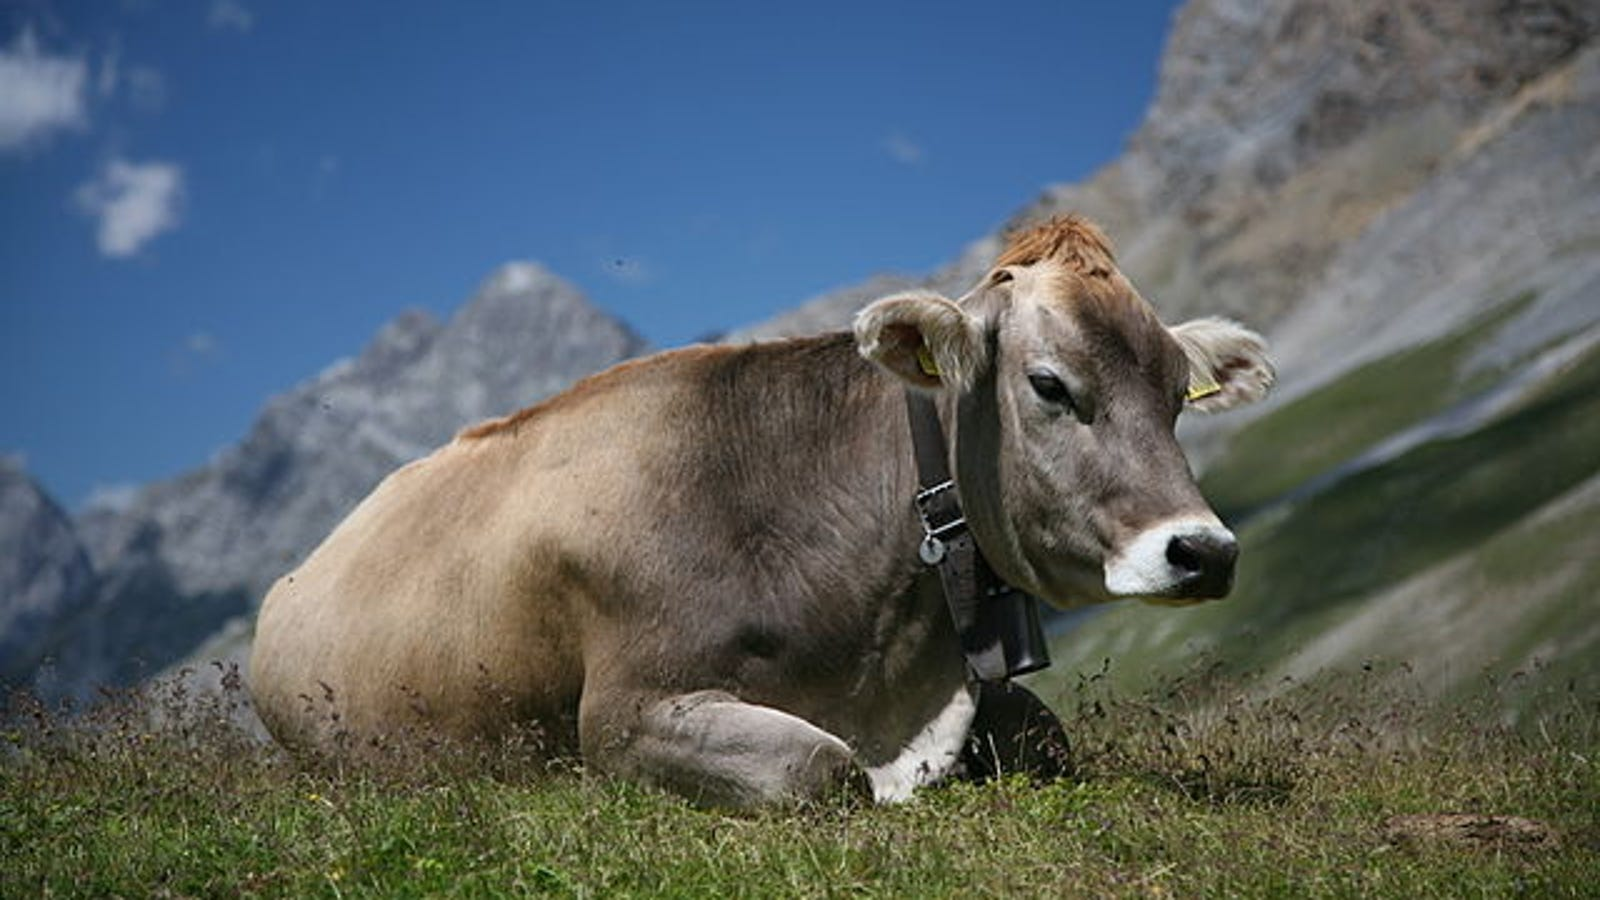 """The Atomic Energy Commission Once Put A """"Nuclear Heart"""" In A Cow"""